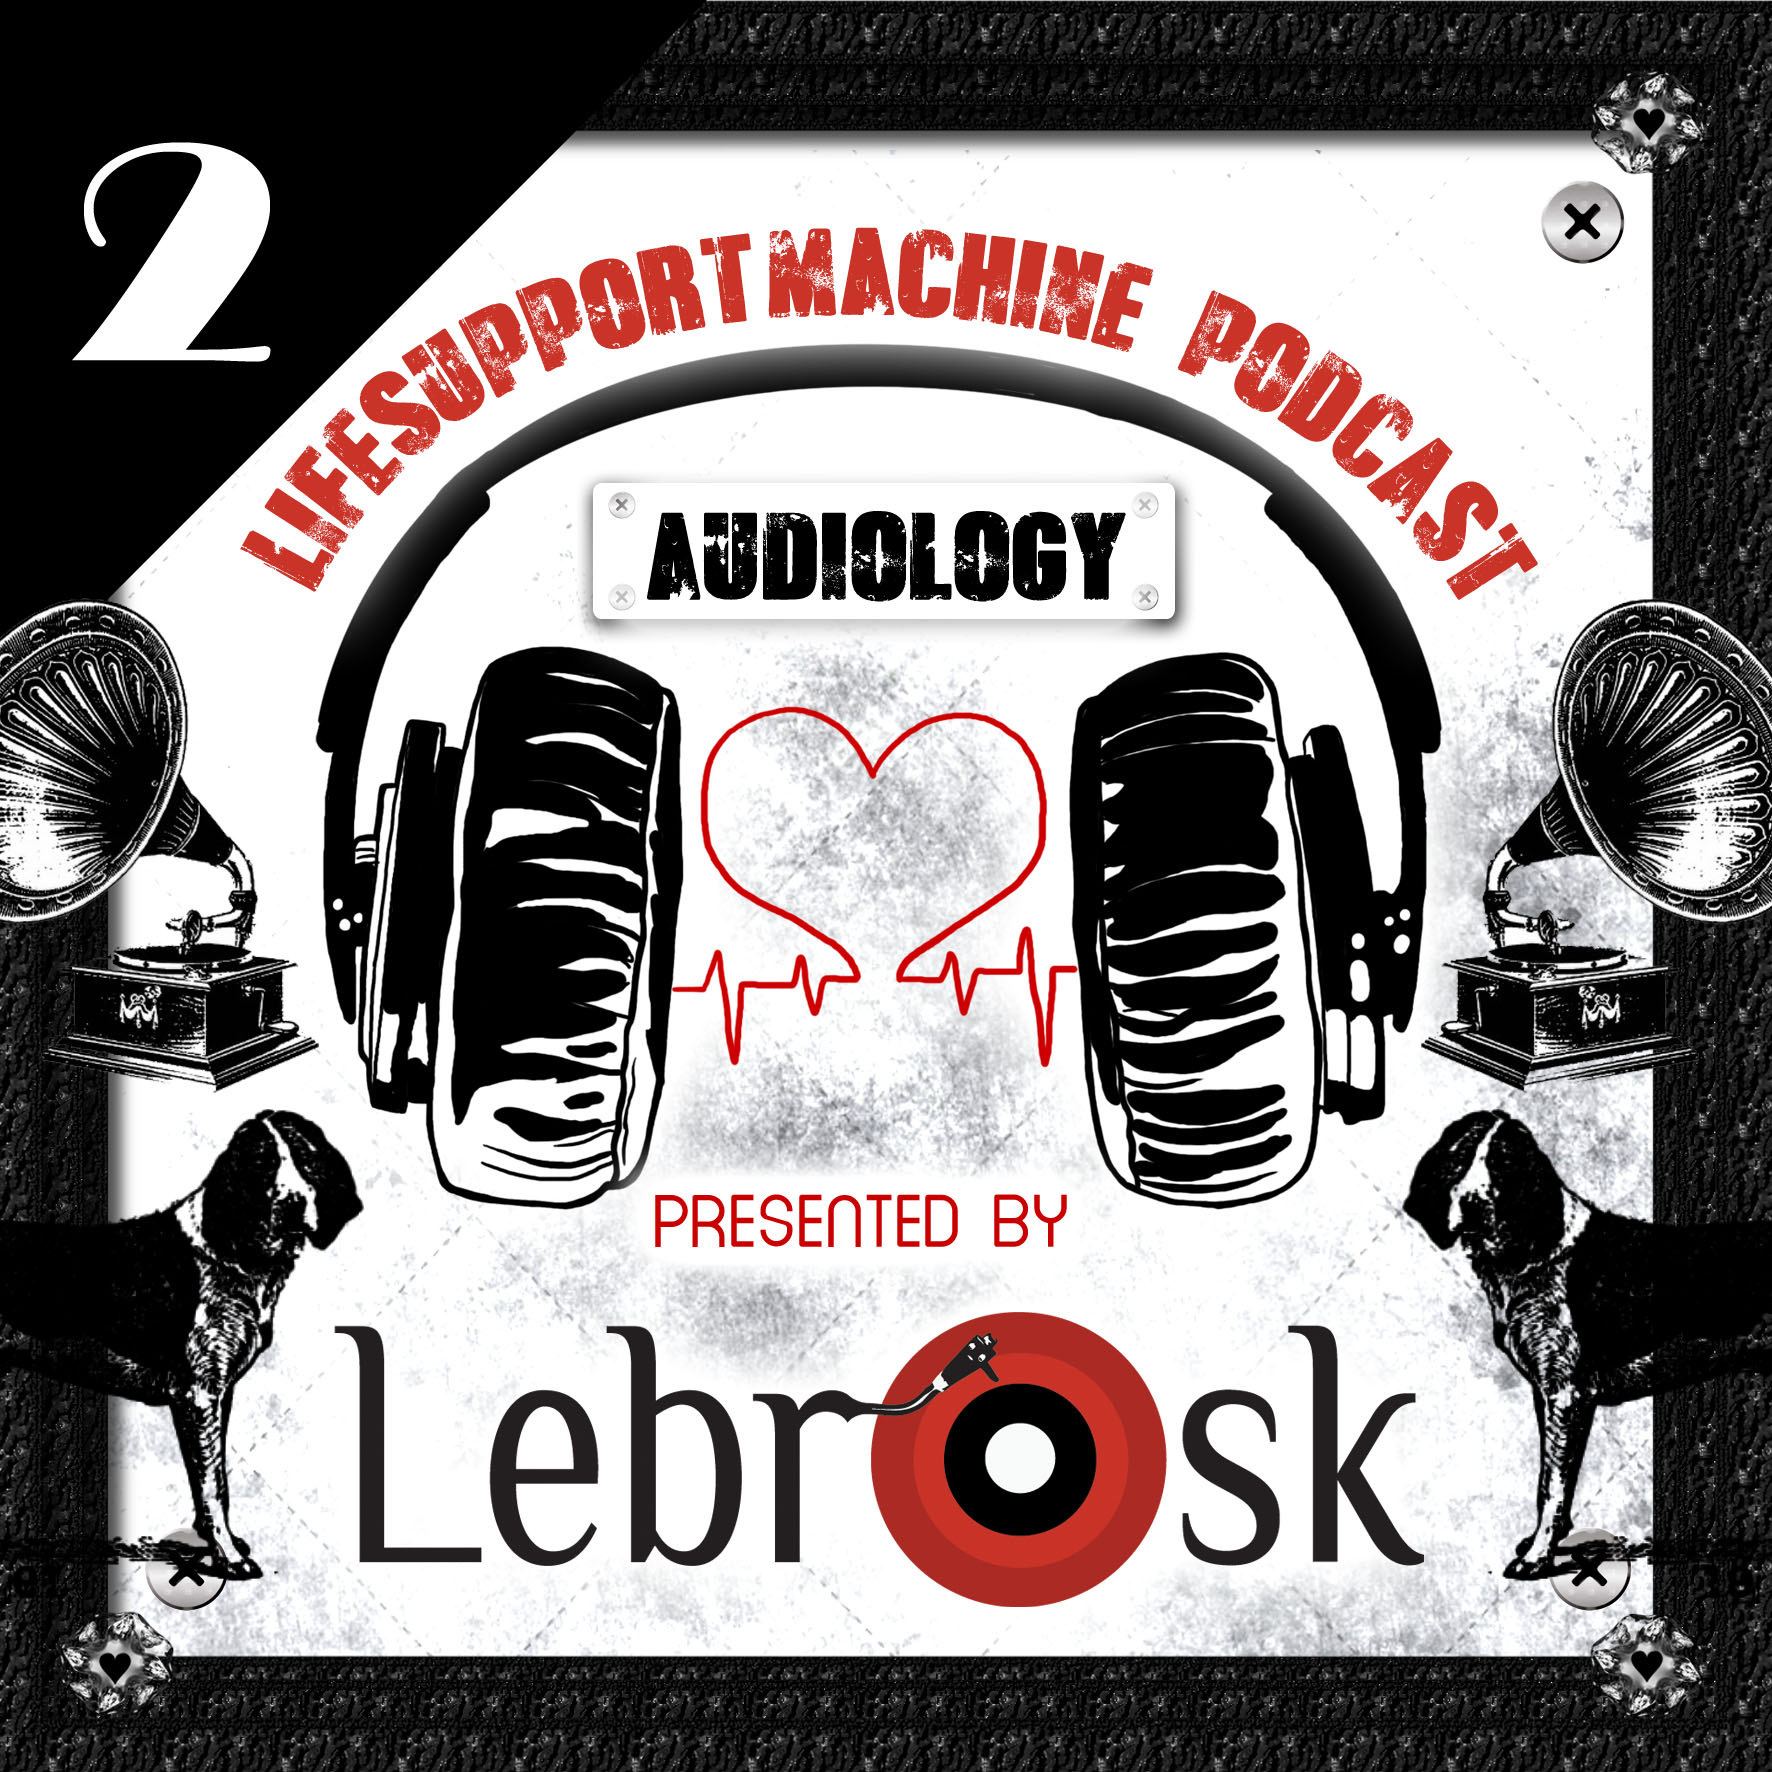 Lebrosk - Audiology Podcast #2 (Guestmix by DJ Chamber